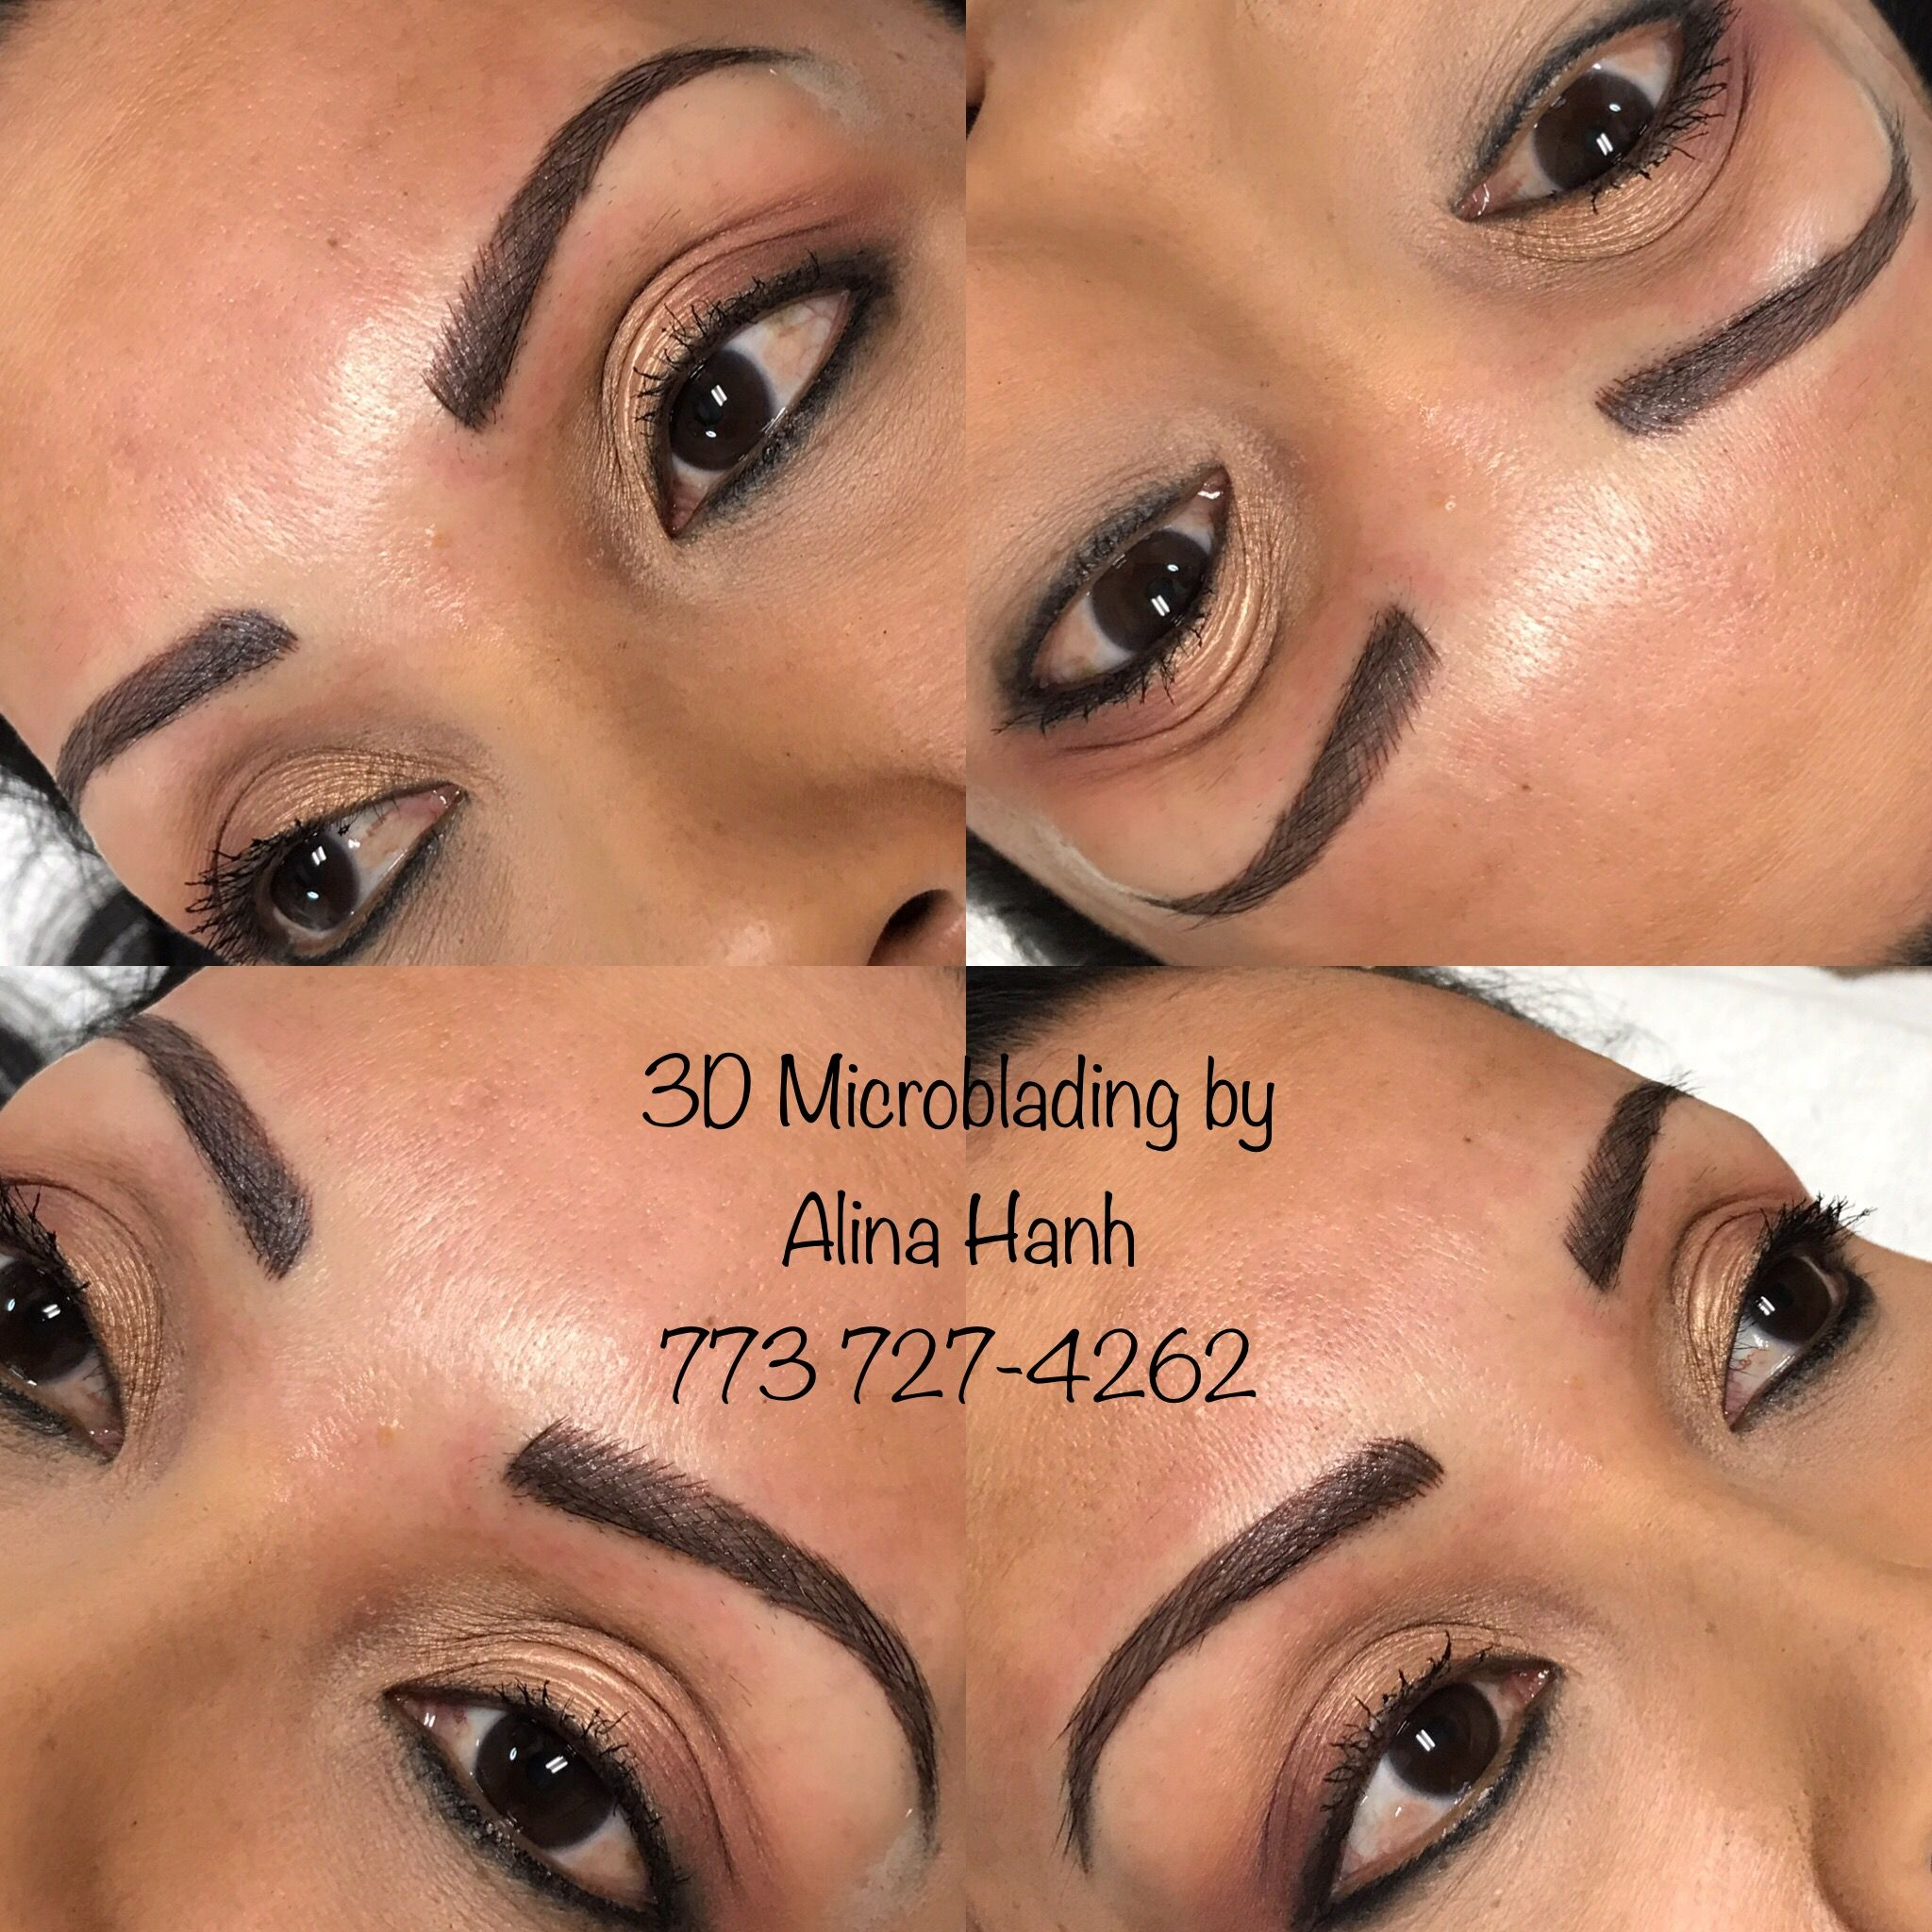 Pin by Alina Hanh on 3D Microblading | Brows on fleek ...